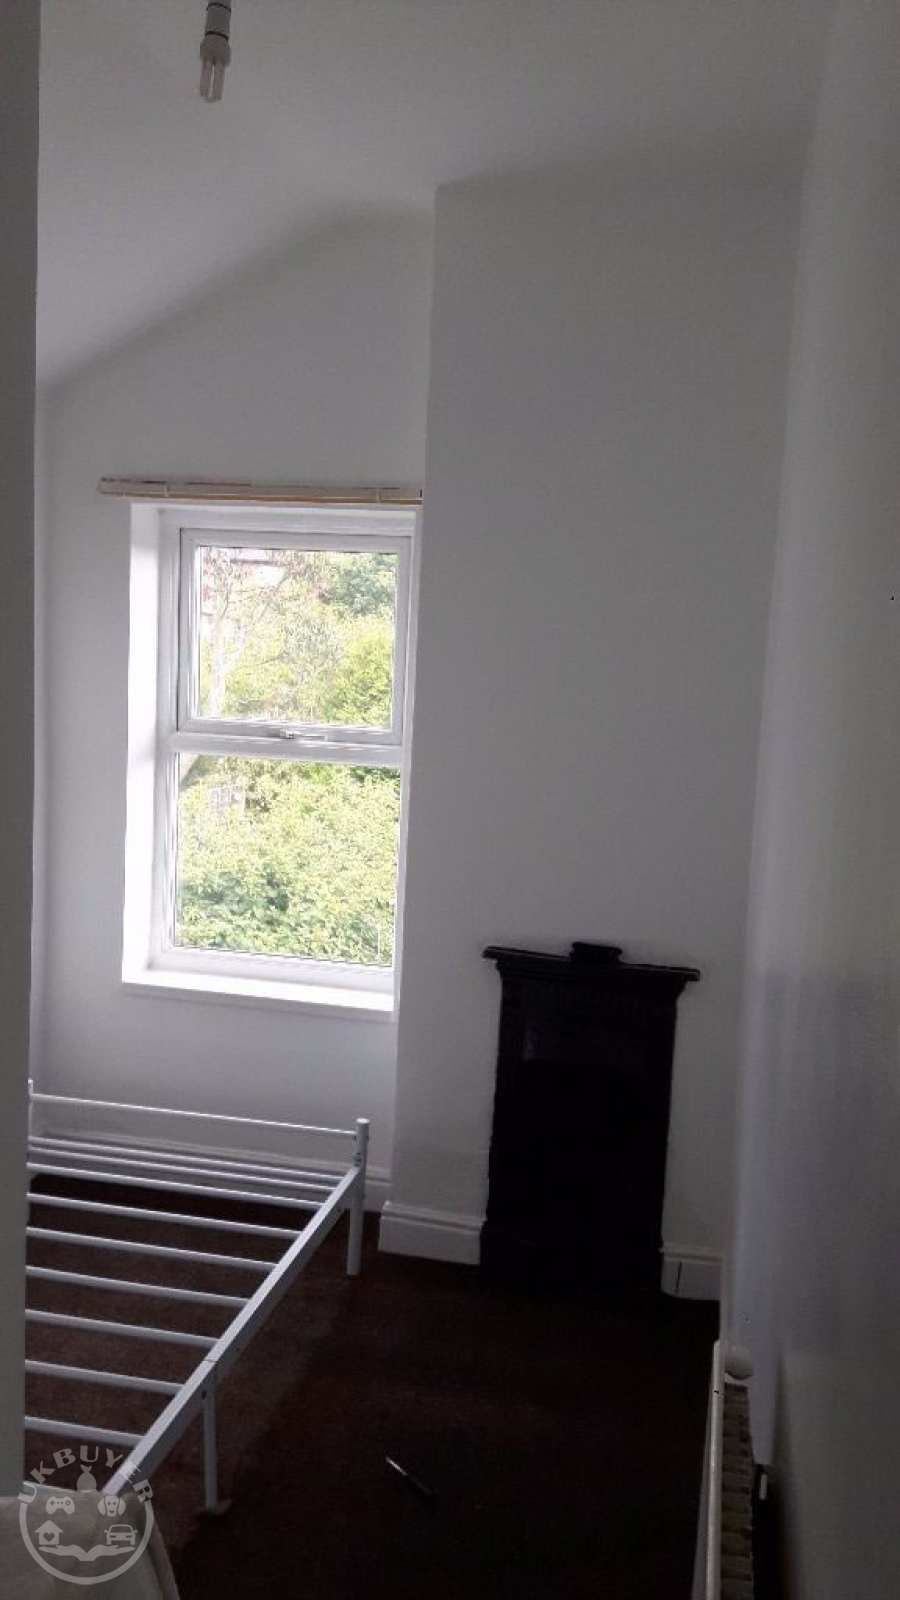 3 rooms available to rent in a shared 4 bed house - bills included